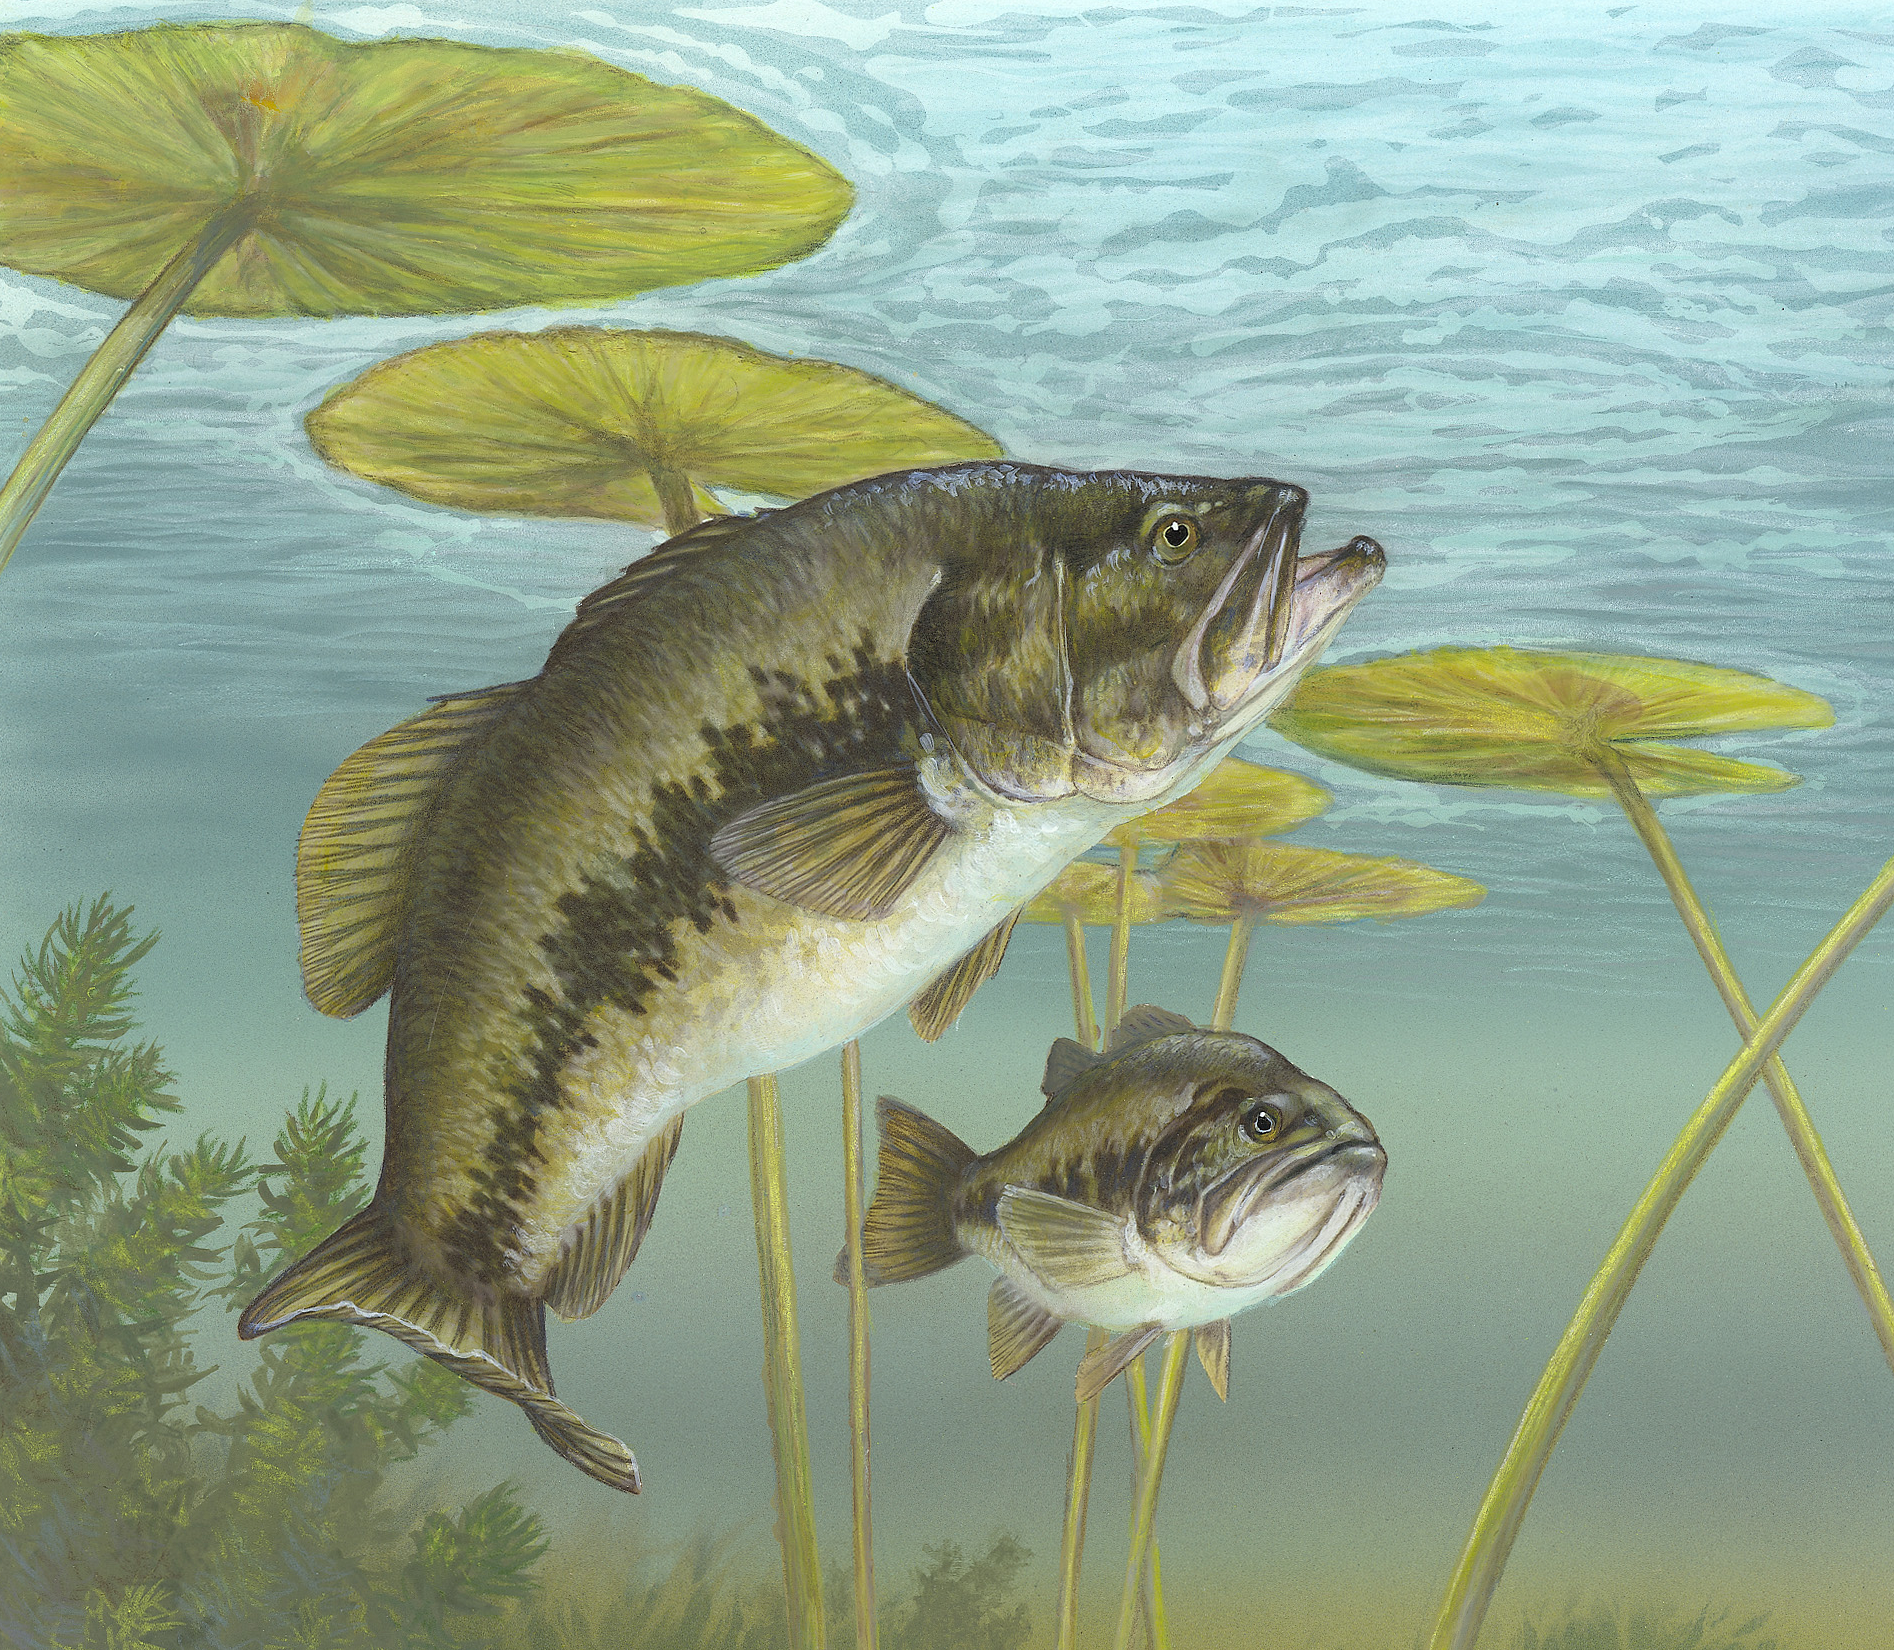 how to tell smallmouth bass from largemouth bass